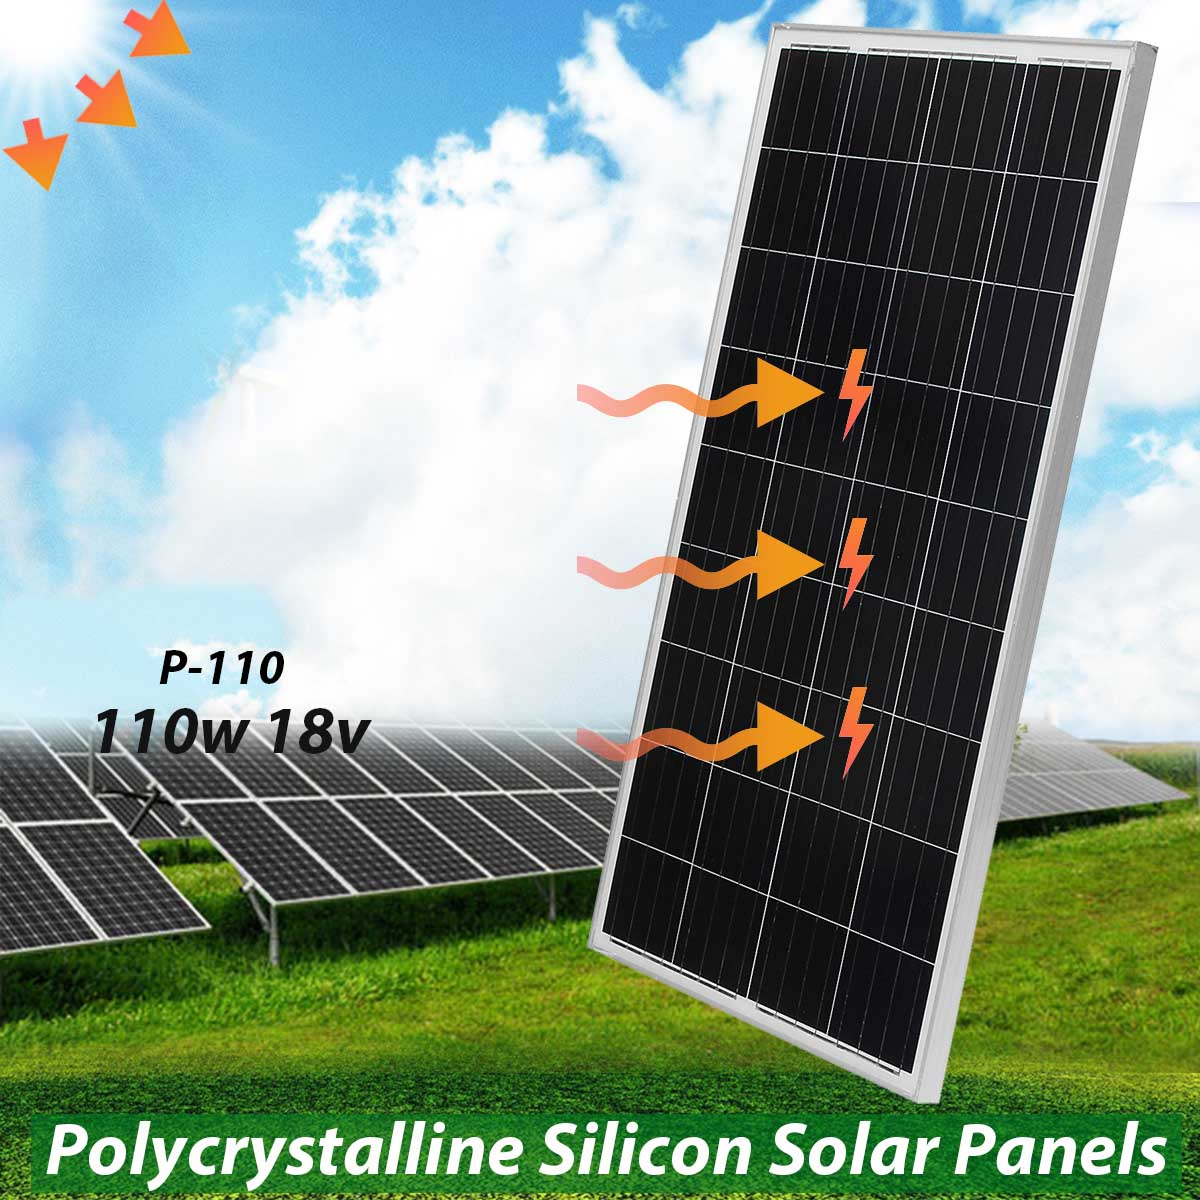 LEORY 110w 18v Solar Panel Polycrystalline Silicon Solar System Supply For Car Battery With Glass Bearing Plate Suitable For t